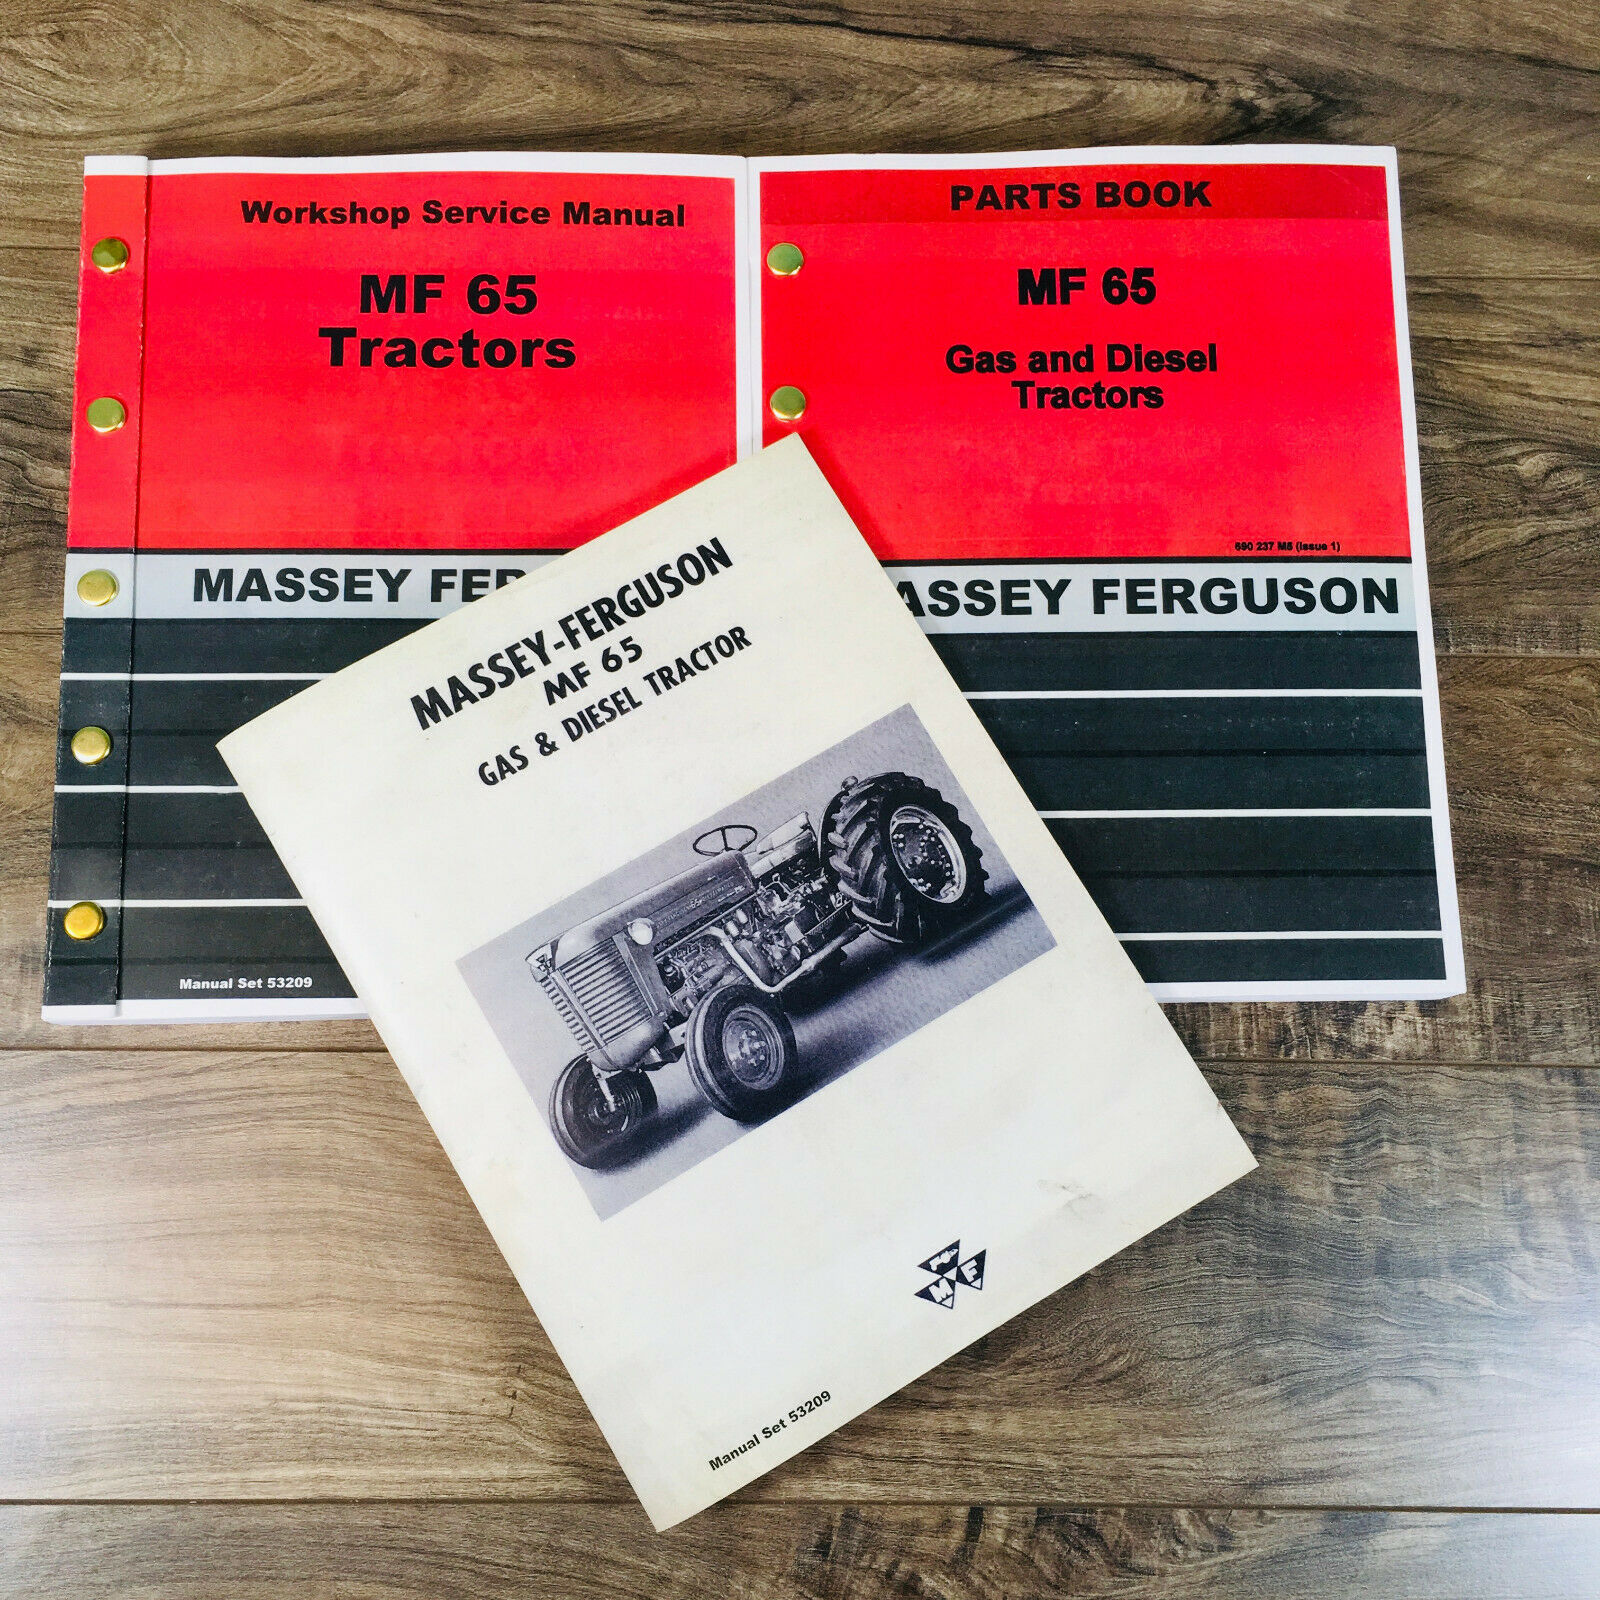 Set Massey Ferguson 65 Tractor Service Parts Catalog Operators Manual Shop  Book 1 of 12FREE Shipping ...